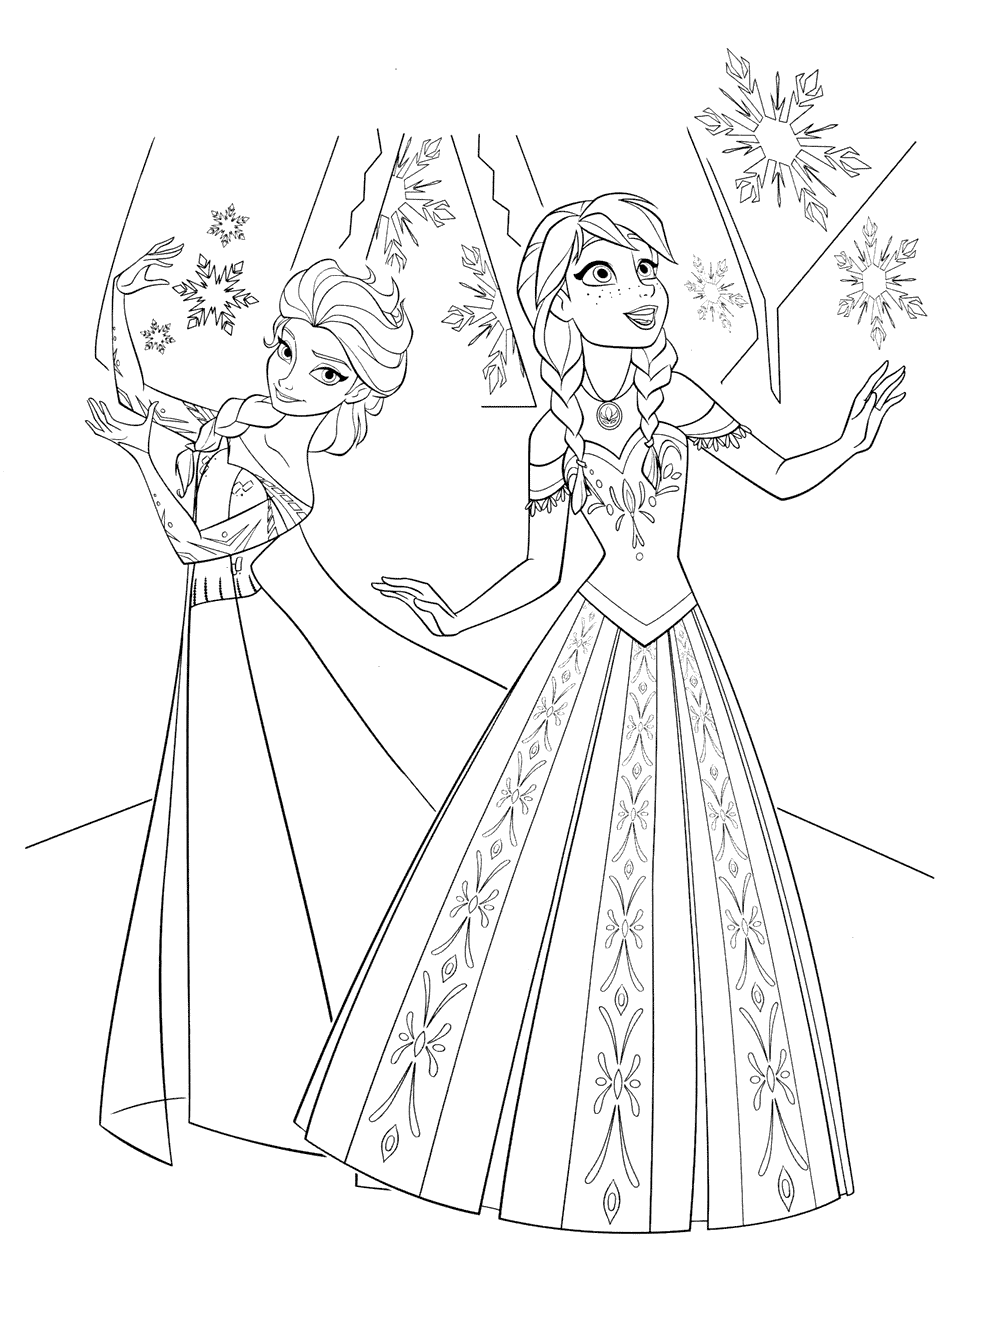 coloring printable elsa and anna elsa and anna coloring pages to download and print for free coloring anna elsa and printable